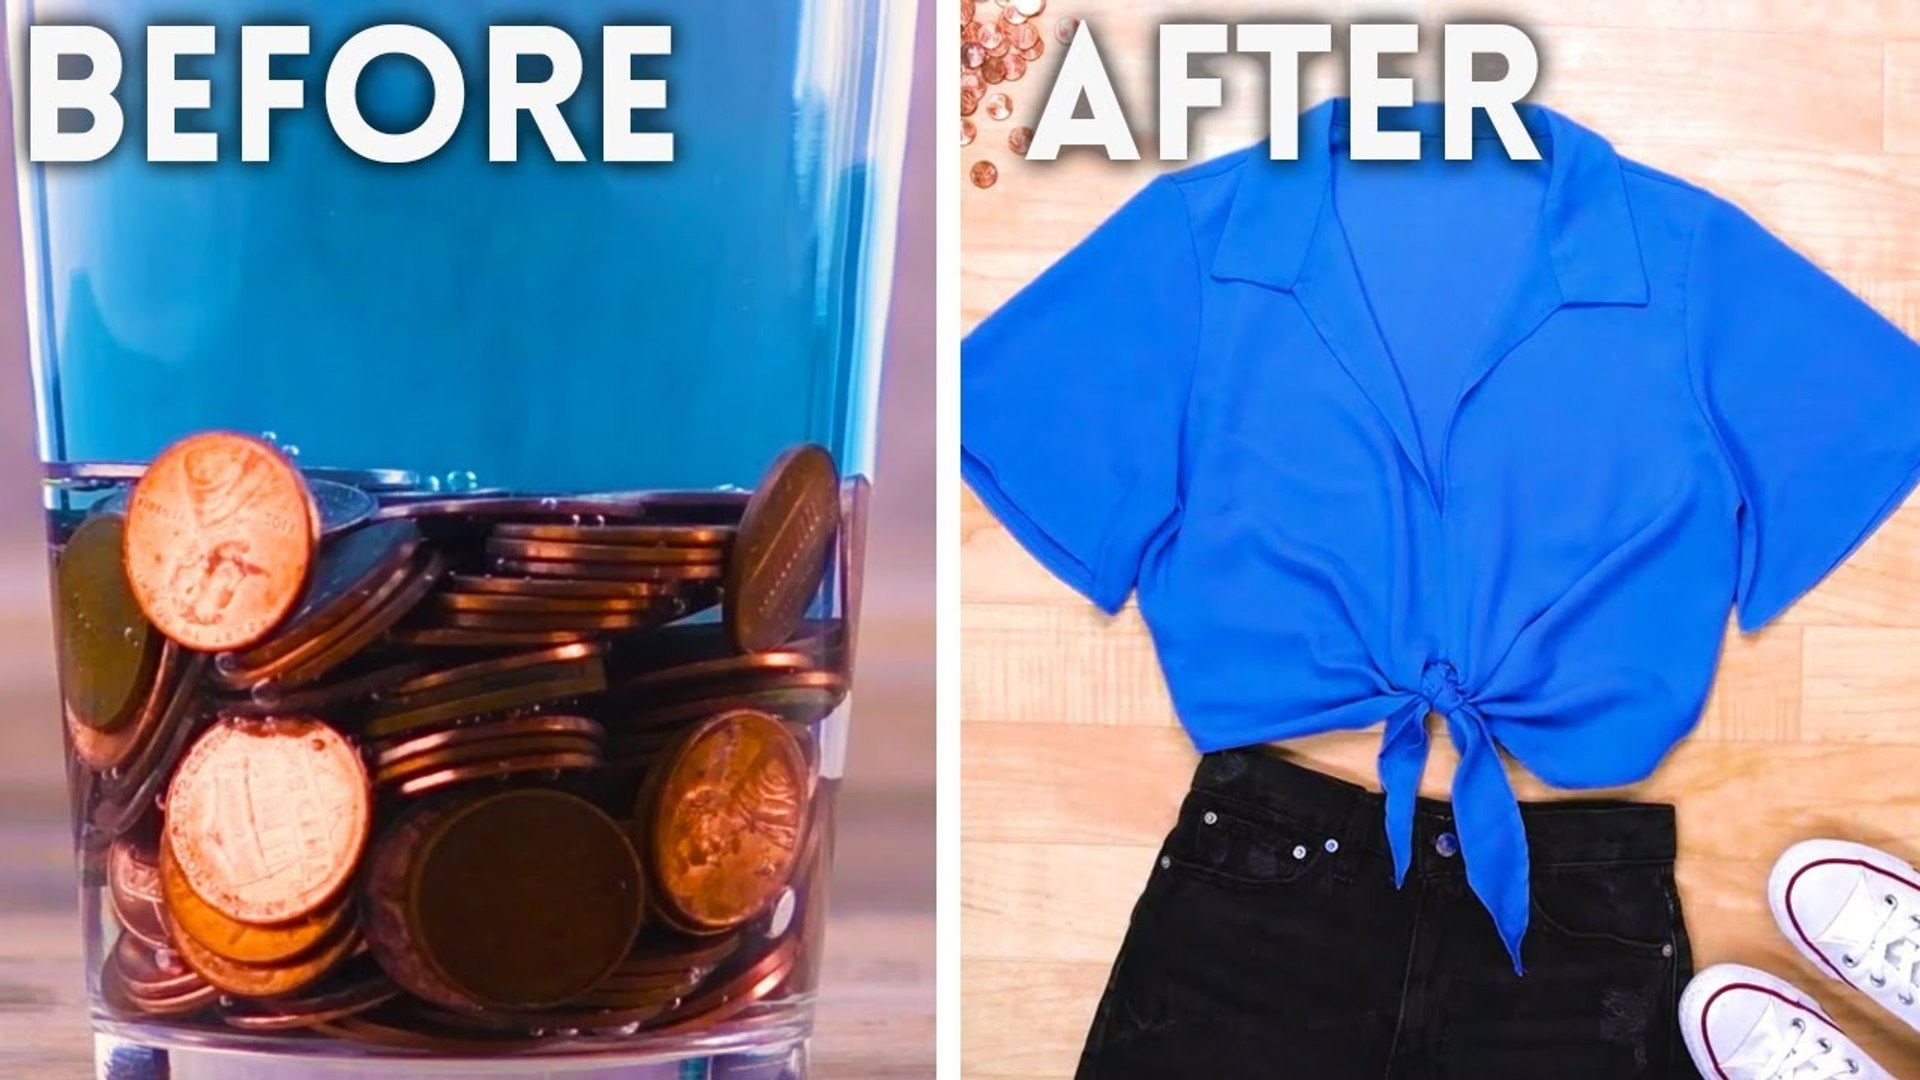 Unusually NATURAL Ways to Dye Your Clothes! - DIY Fashion Hacks by Life For Tips